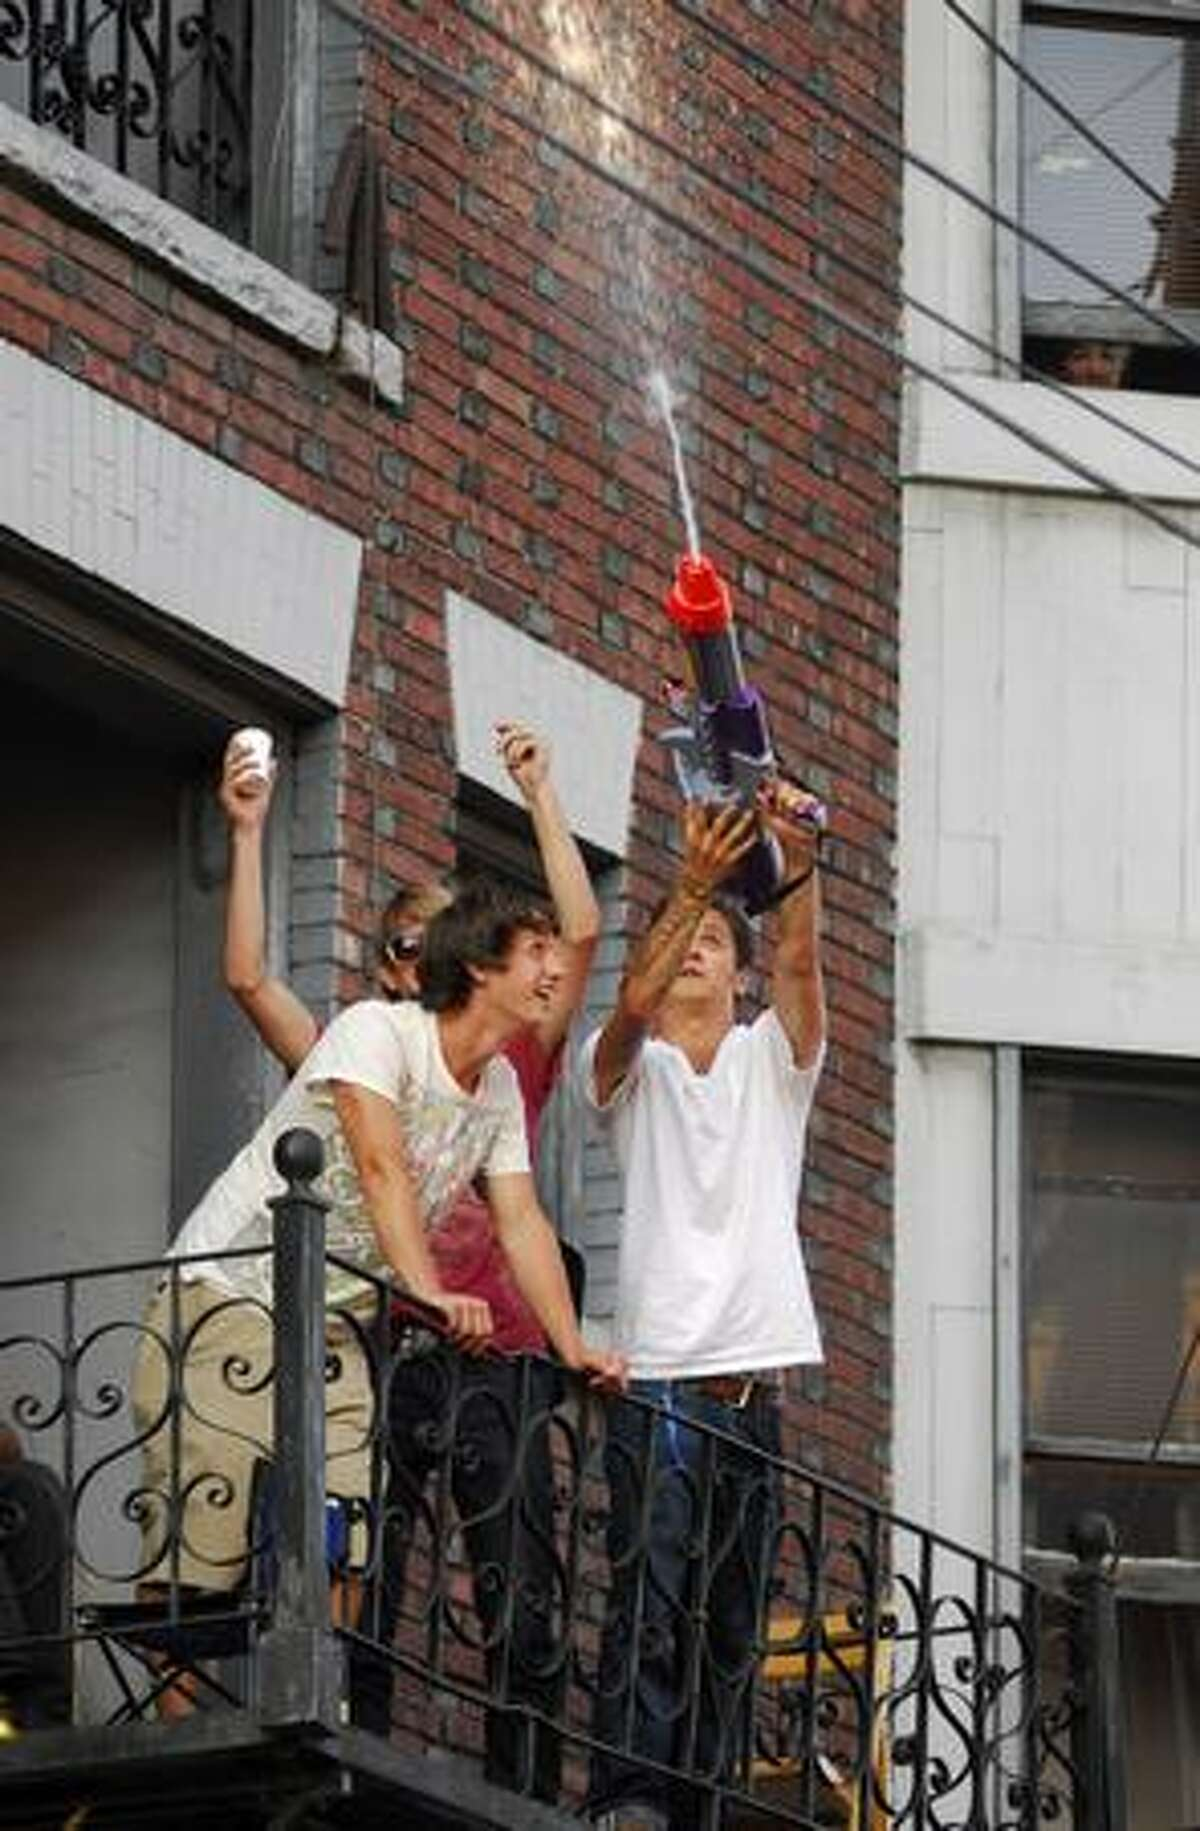 Capitol HIll Block Party attendees squirt water onto the crowd during Deerhunter's performance July 24.